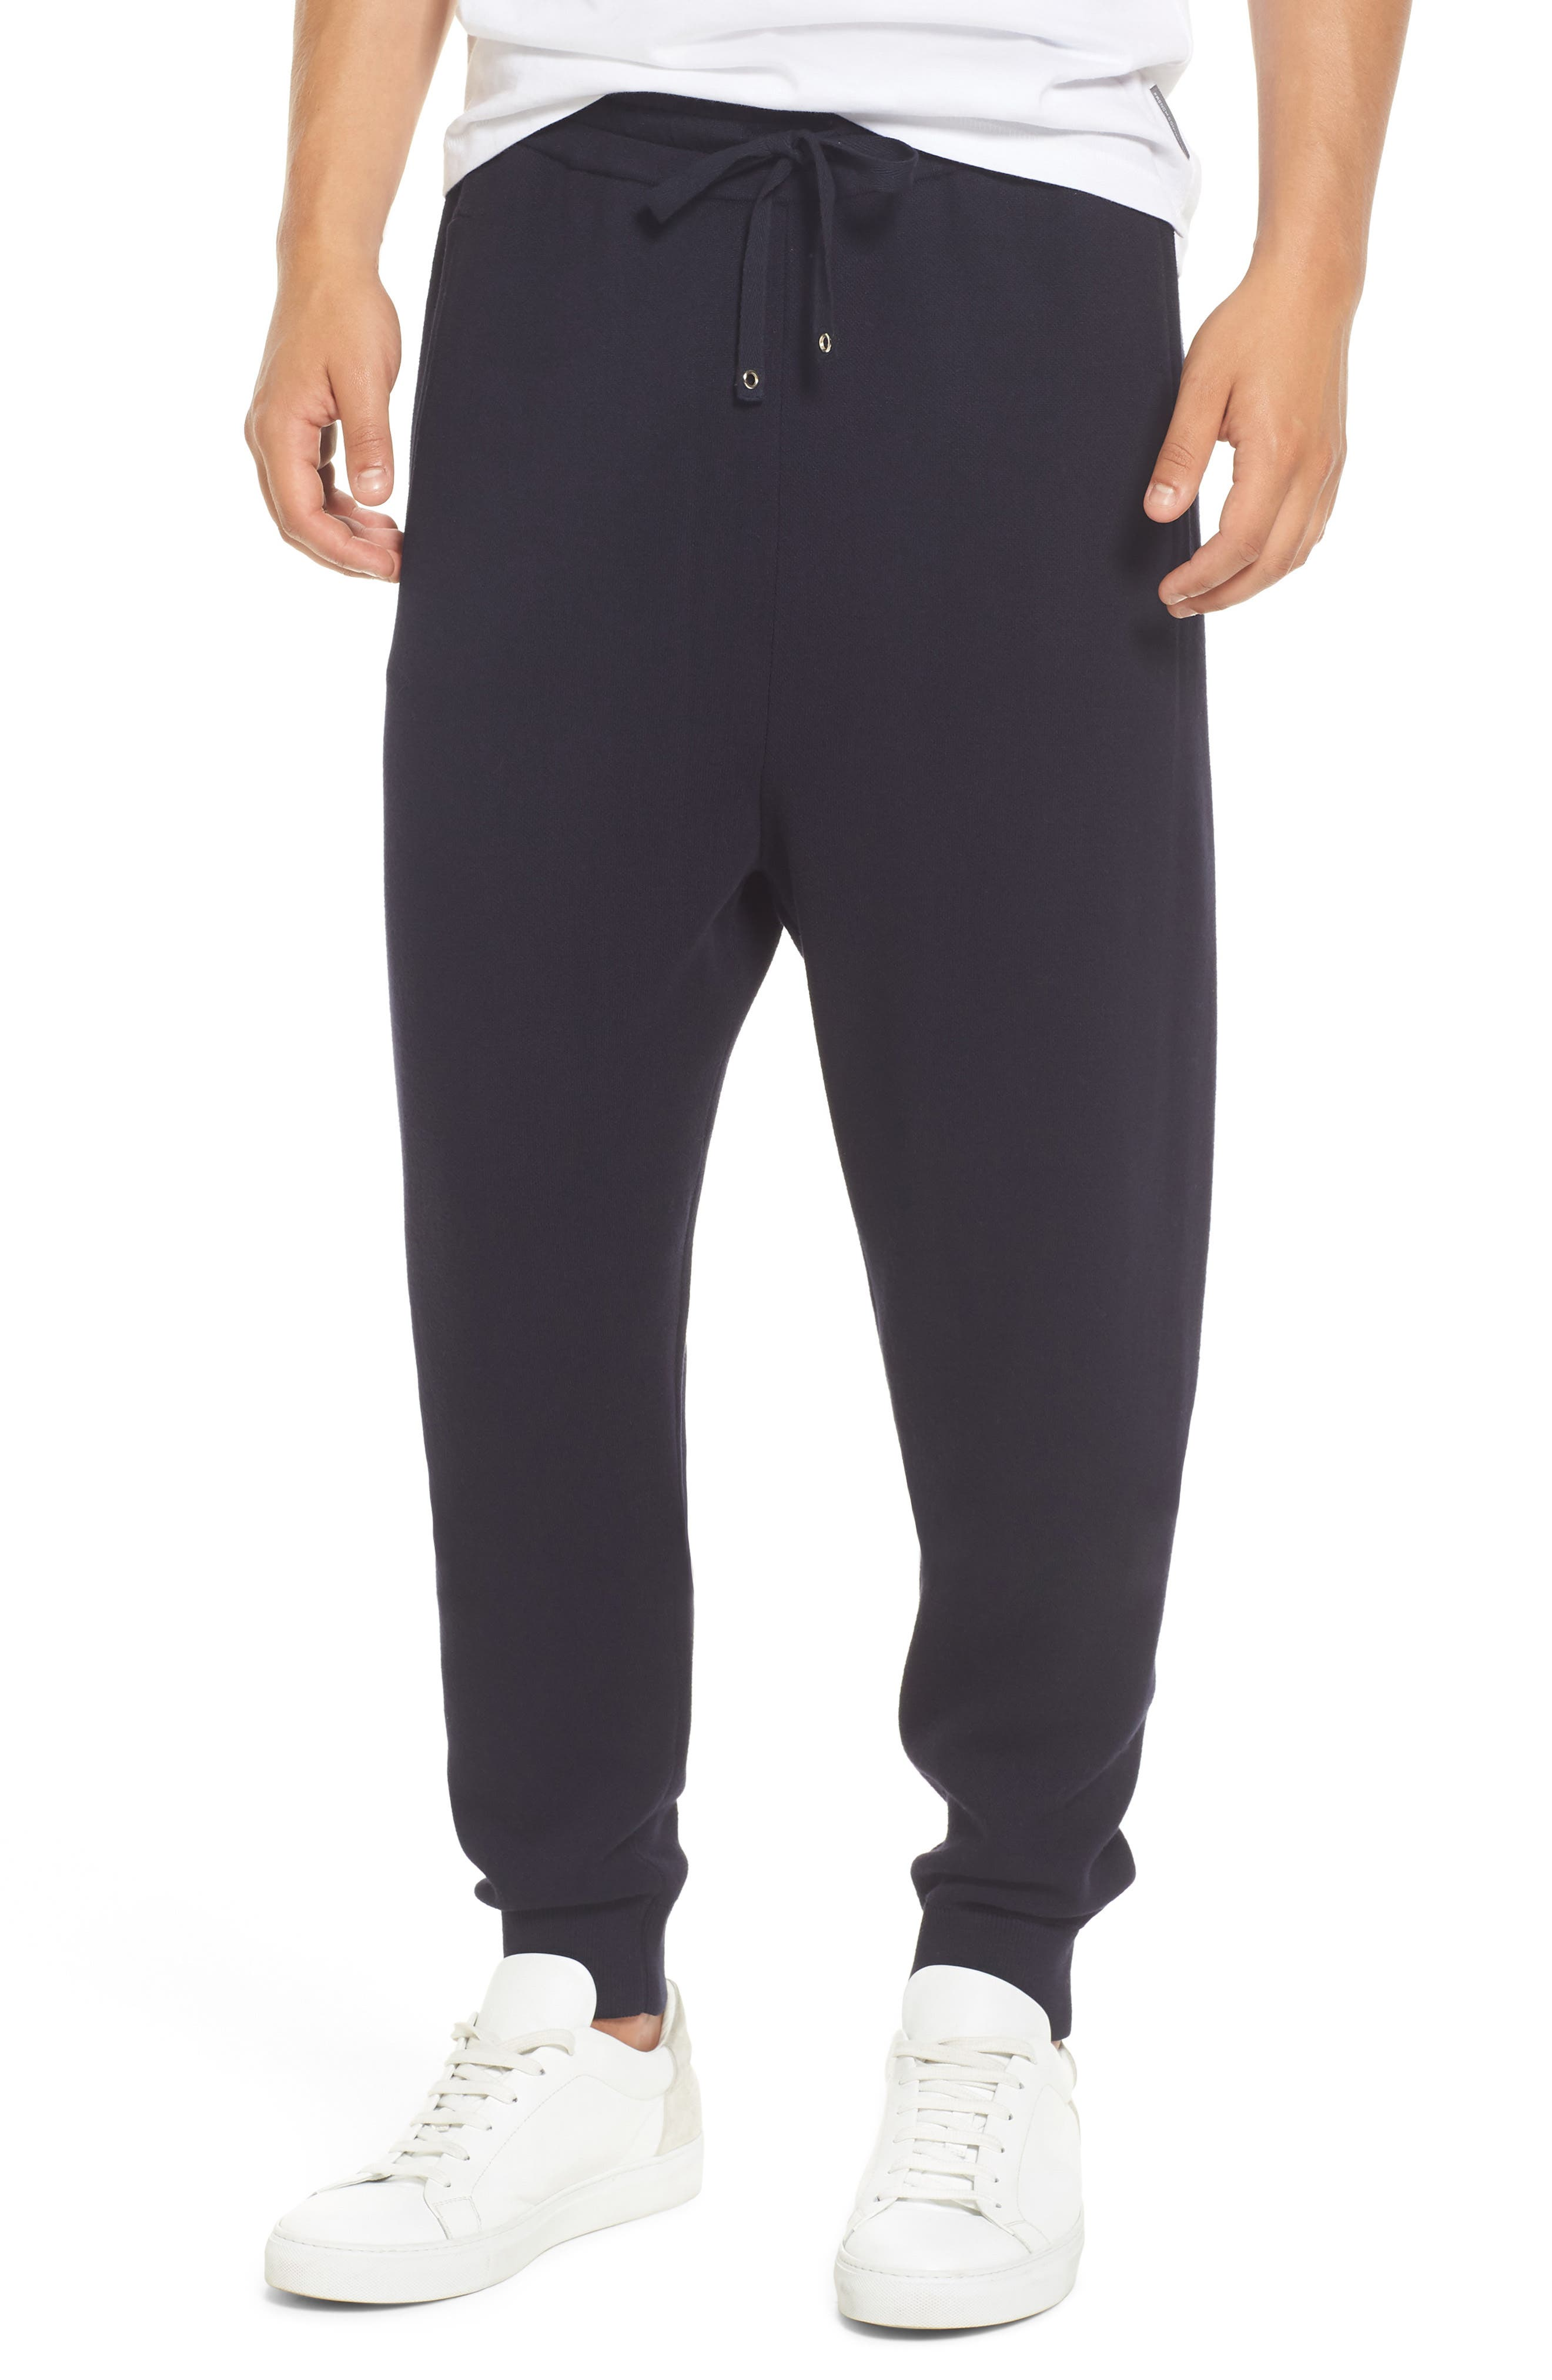 Alternate Image 1 Selected - French Connection Lakra Knit Pants